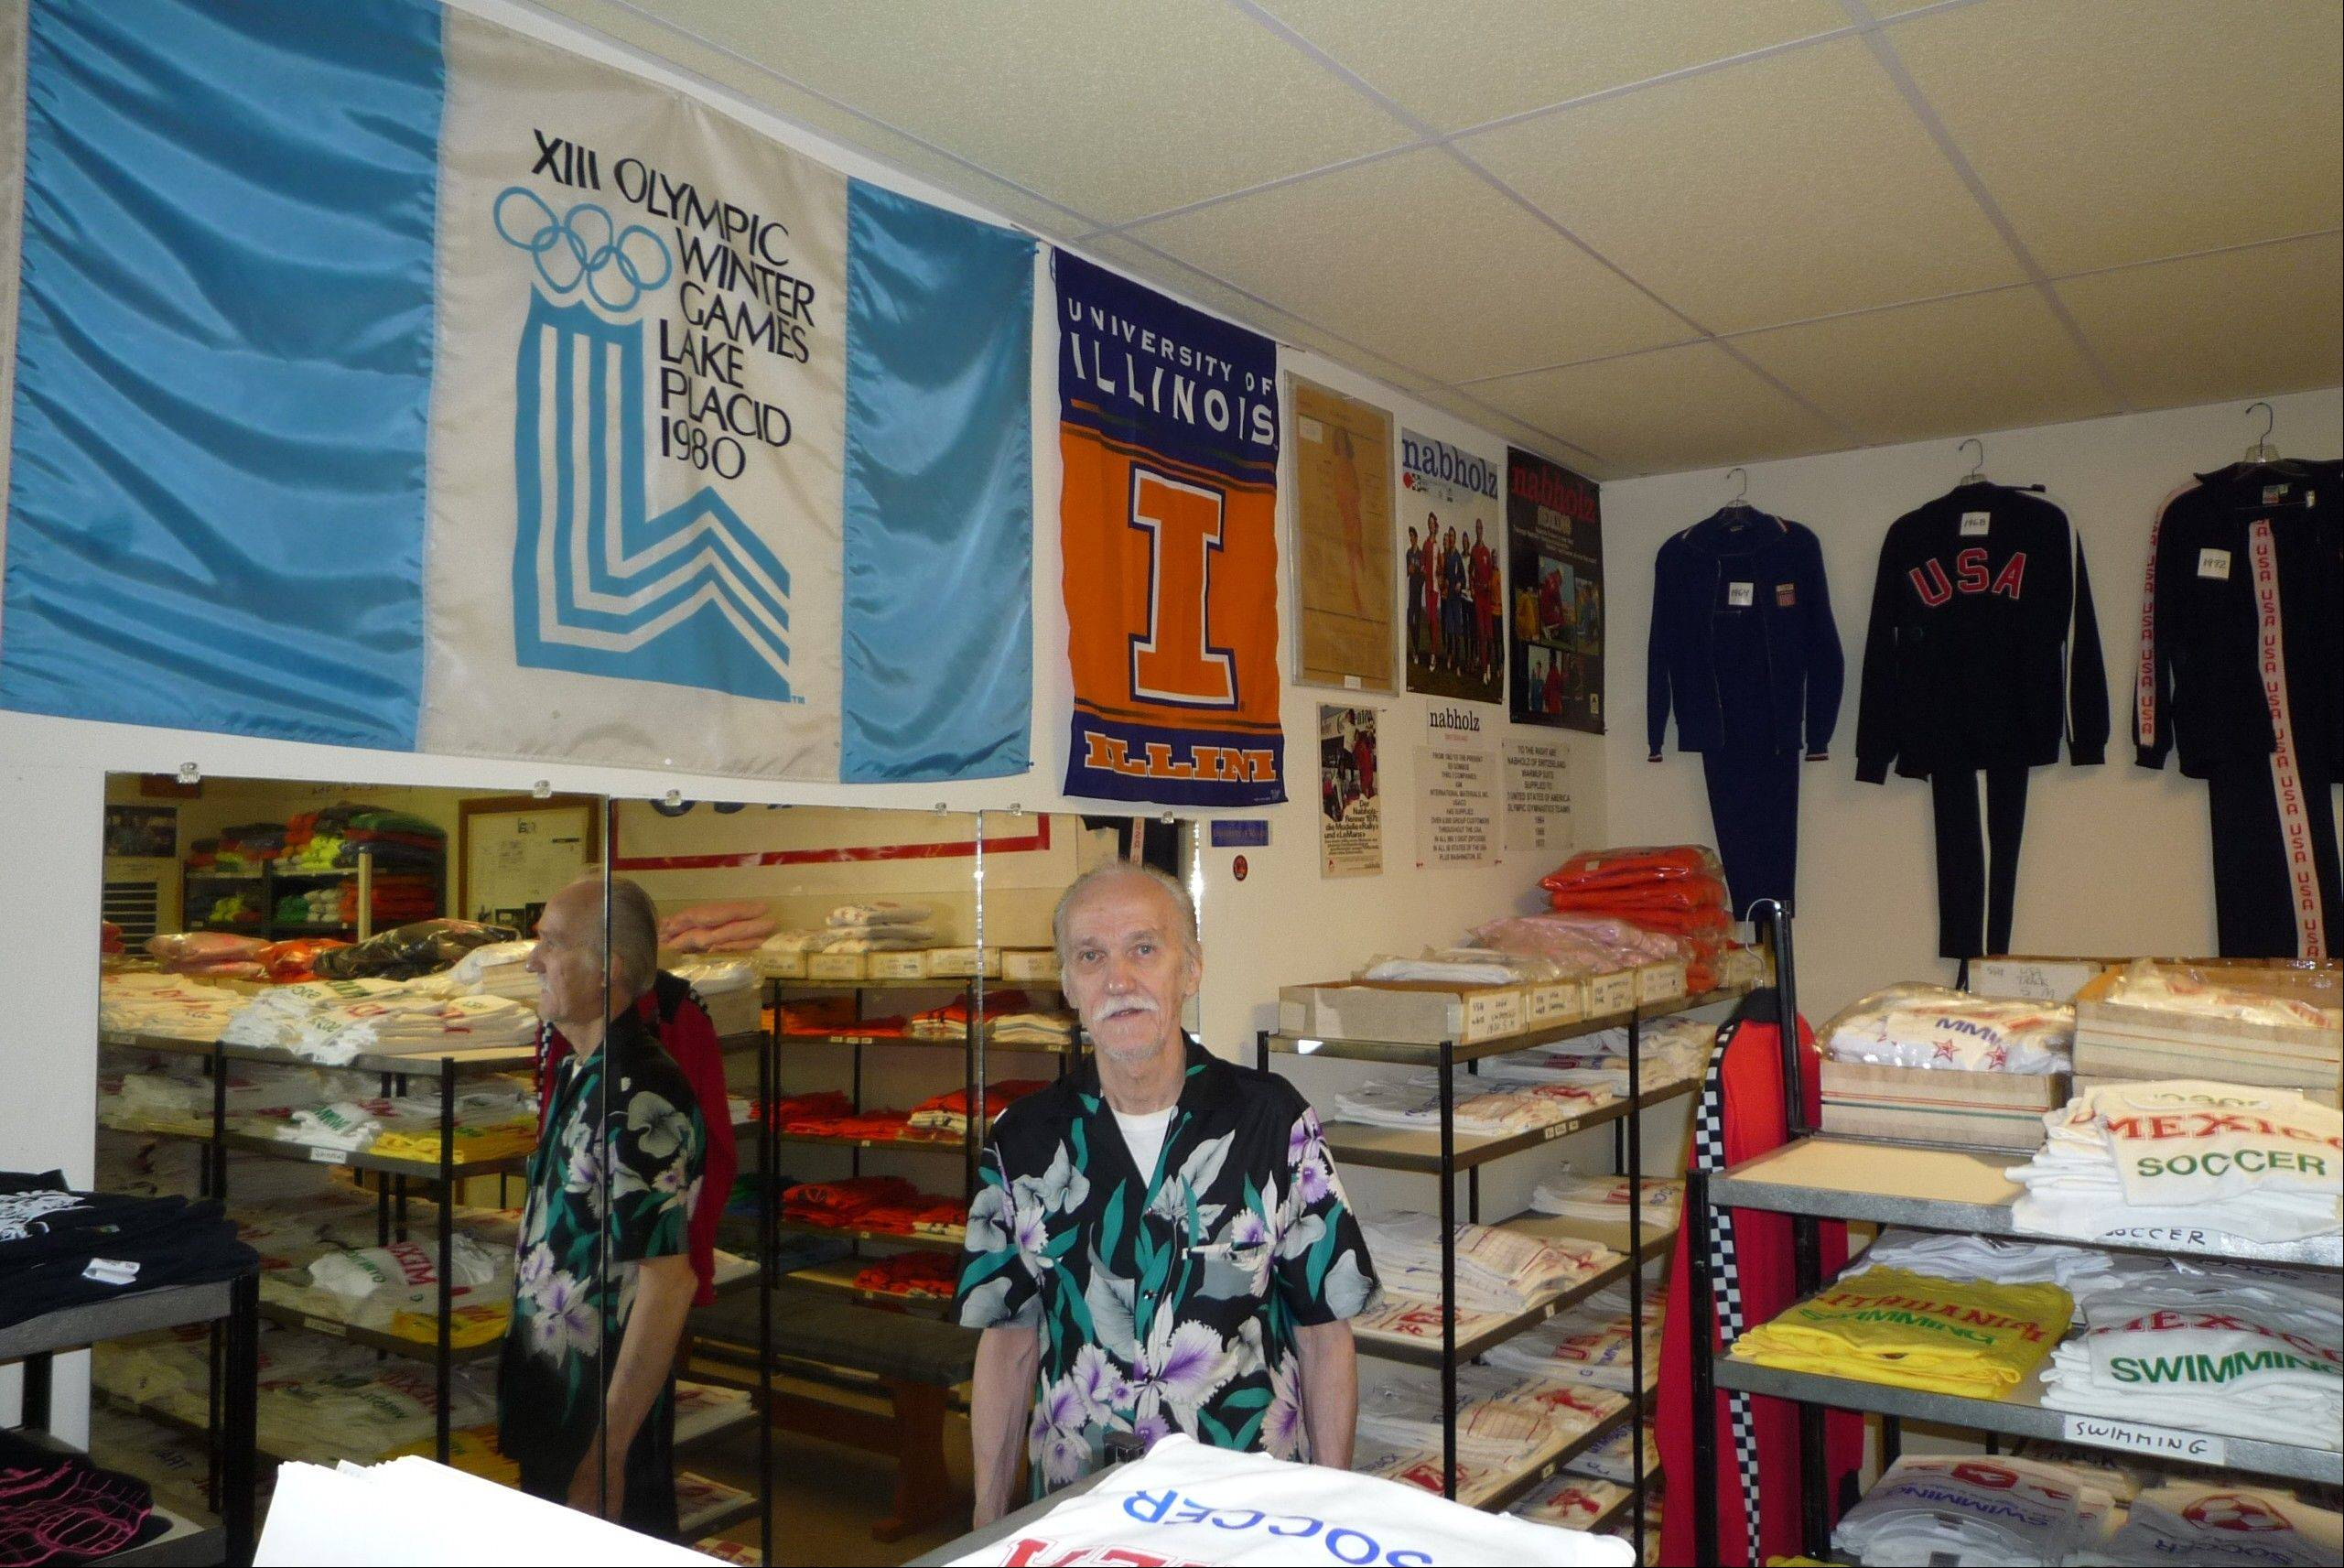 "An outstanding gymnast at the University of Illinois, Ed Gombos narrowly missed making the U.S. Olympic team. But the Addison man did end up as an official supplier of the suits U.S. athletes wore in several Olympics. Track suits from 1964, 1968 and 1972 hang on the wall as Gombos explains how the ""Miracle on Ice"" hockey team sent him the 1980 Lake Placid banner he proudly displays."